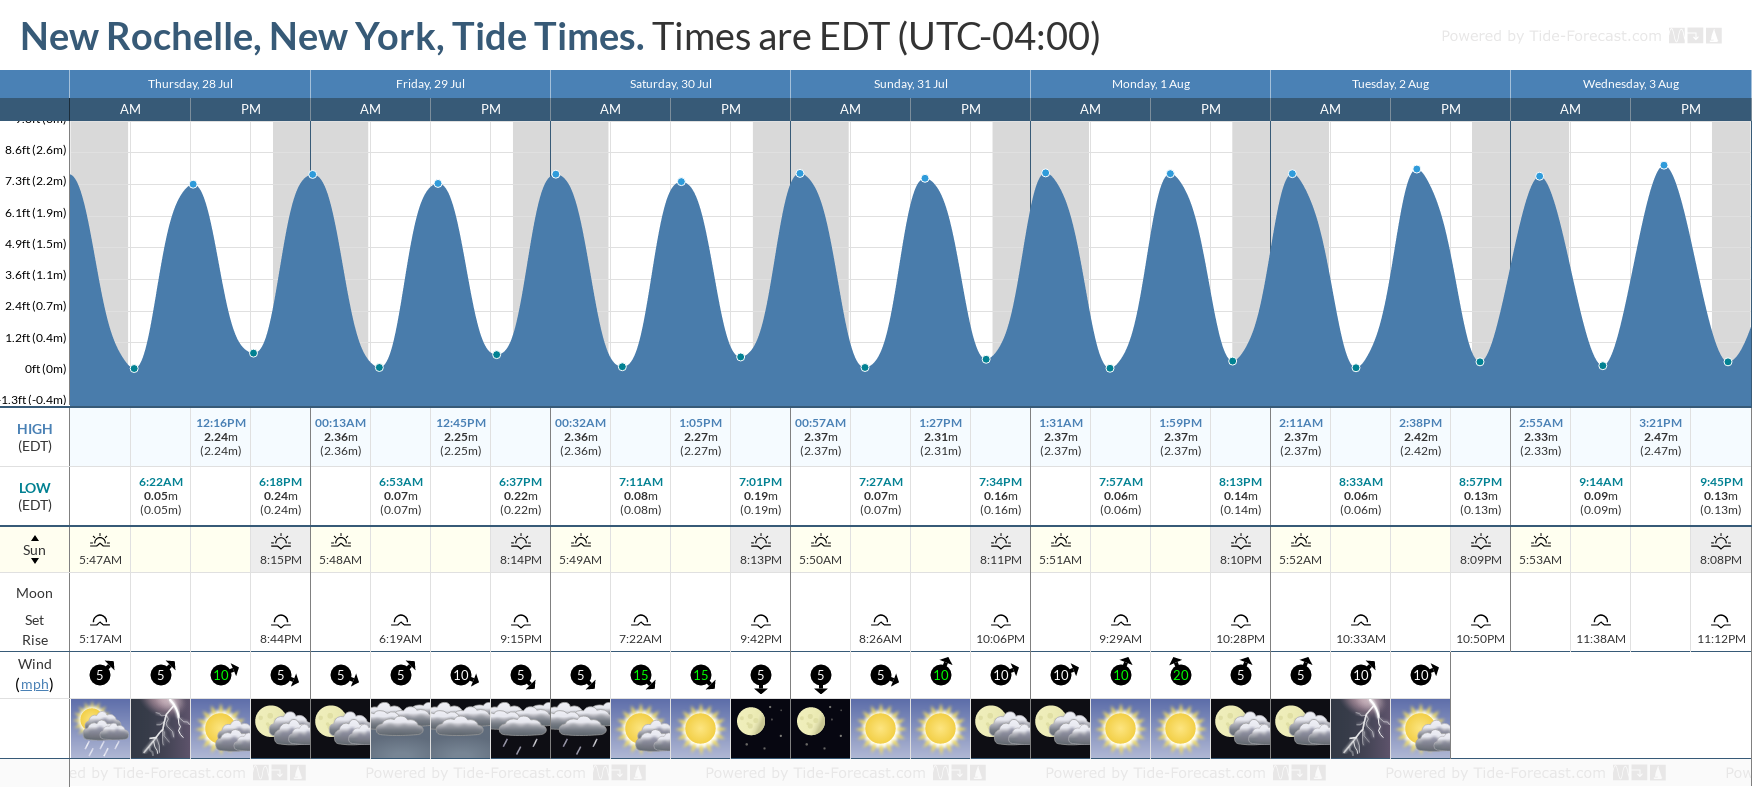 New Rochelle, New York Tide Chart including high and low tide tide times for the next 7 days